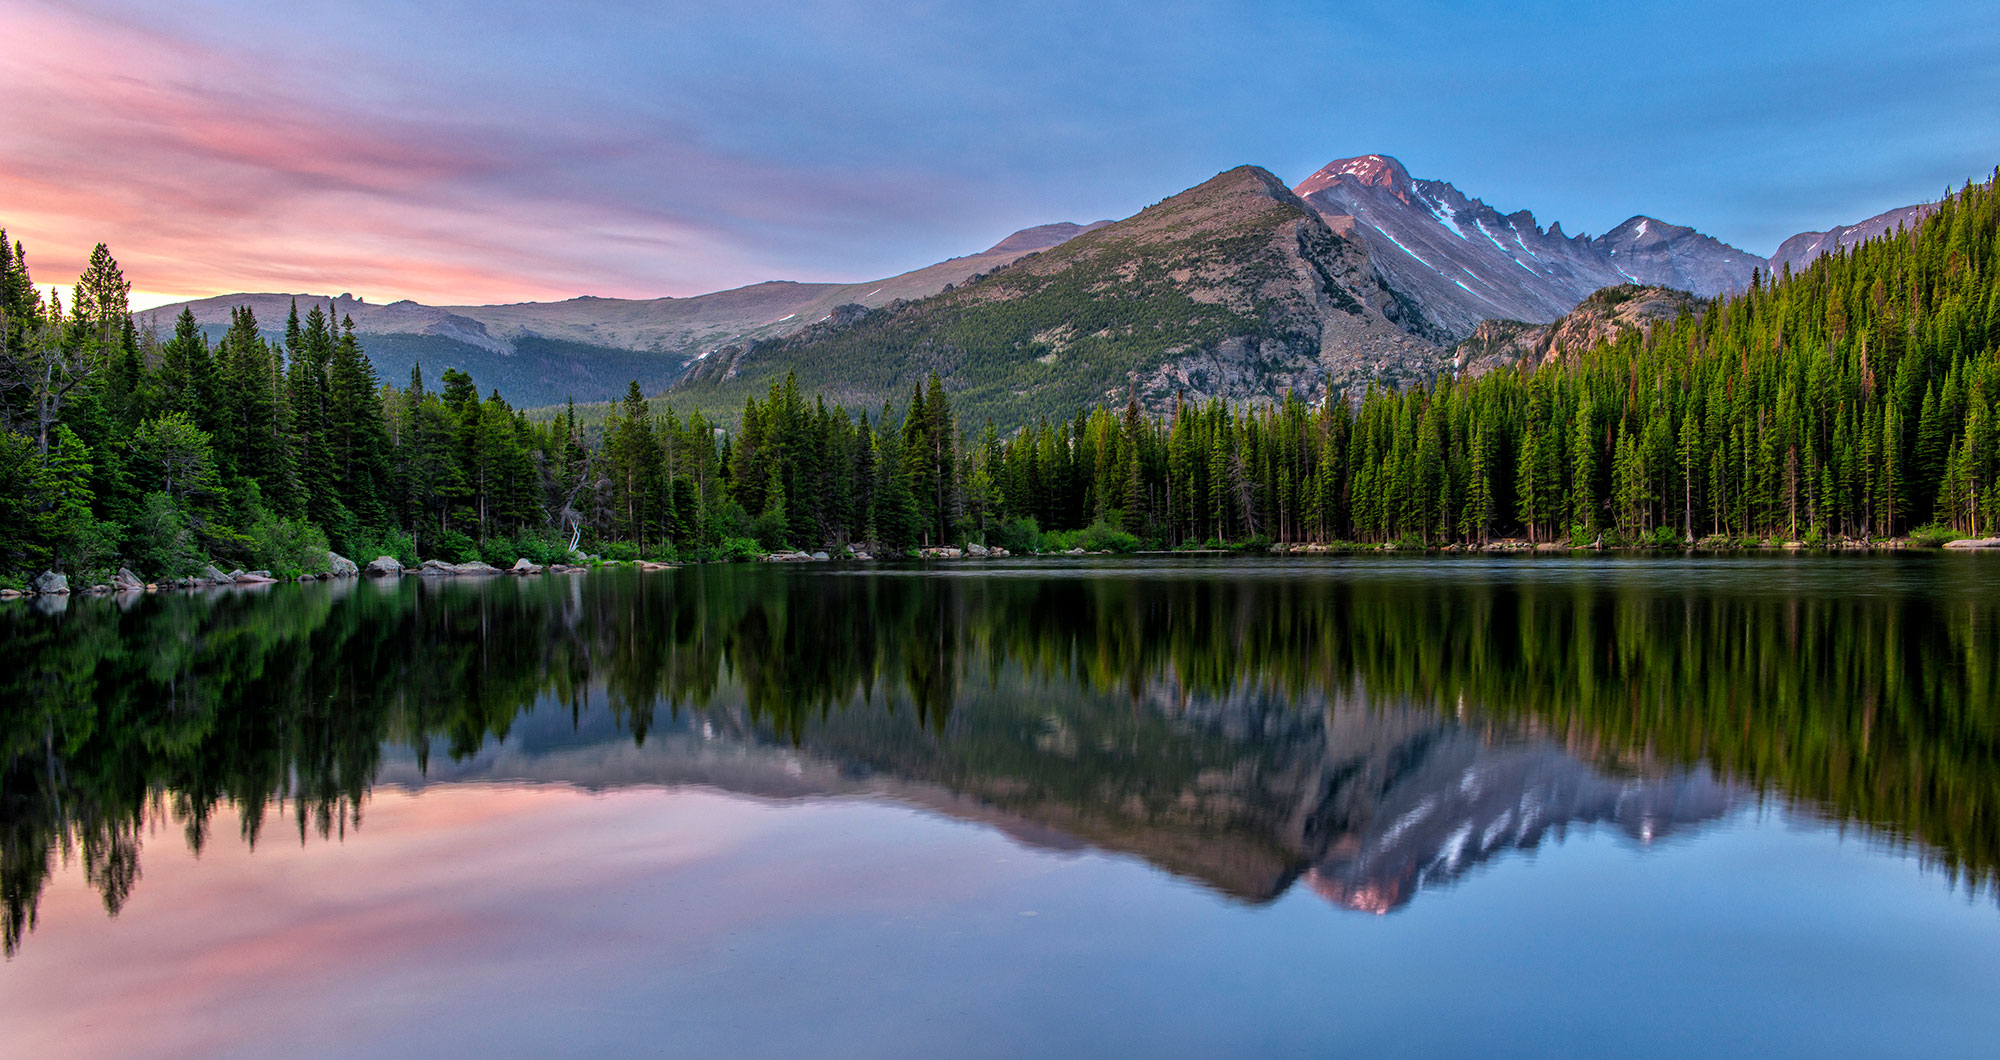 Bear Lake provides an almost perfect  sunrise relection for Long's Peak in the Glacier Basin section of Rocky Mountain National Park, Colorado